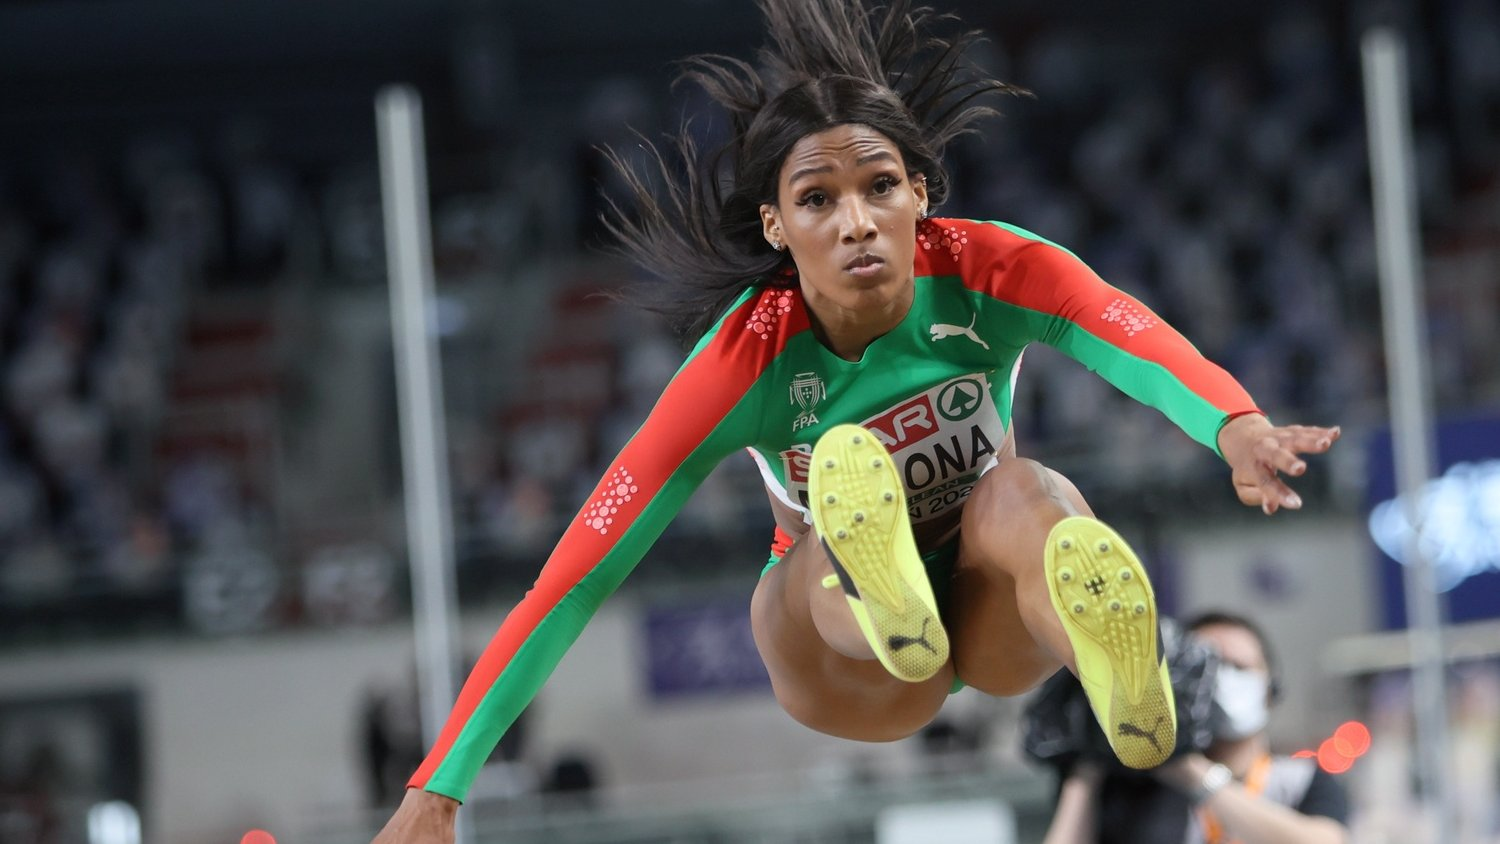 epa09056340 Patricia Mamona of Portugal competes in the women's Triple Jump qualification of the 36th European Athletics Indoor Championships at the Arena Torun, in Torun, north-central Poland, 06 March 2021.  EPA/LESZEK SZYMANSKI POLAND OUT